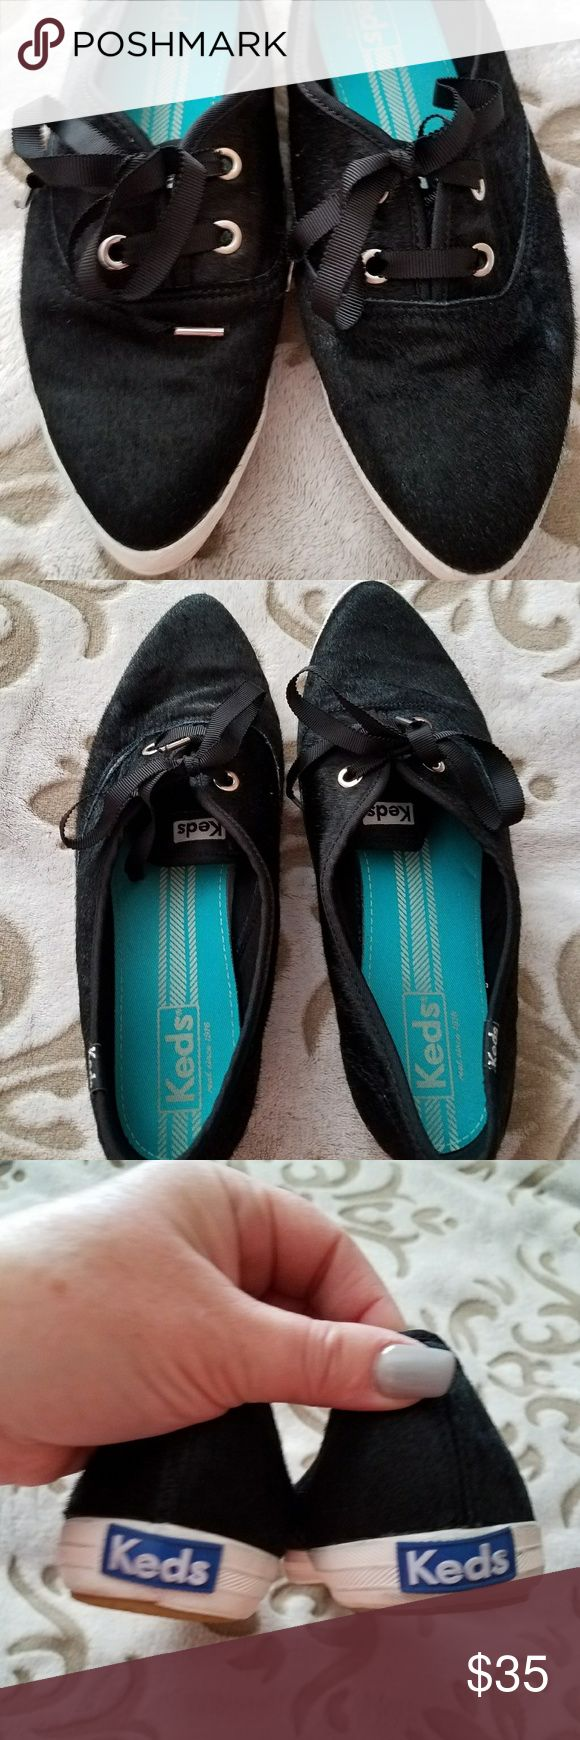 Keds ~ Black Pointy Toes Limited Edition Shoes Keds.  Gently worn 1-2 times & in terrific condition.  Black faux fur material with black laces for a dressier overall appearance.  Limited edition pointy toes for a completely unique look.  Style + Comfort! Keds Shoes Flats & Loafers